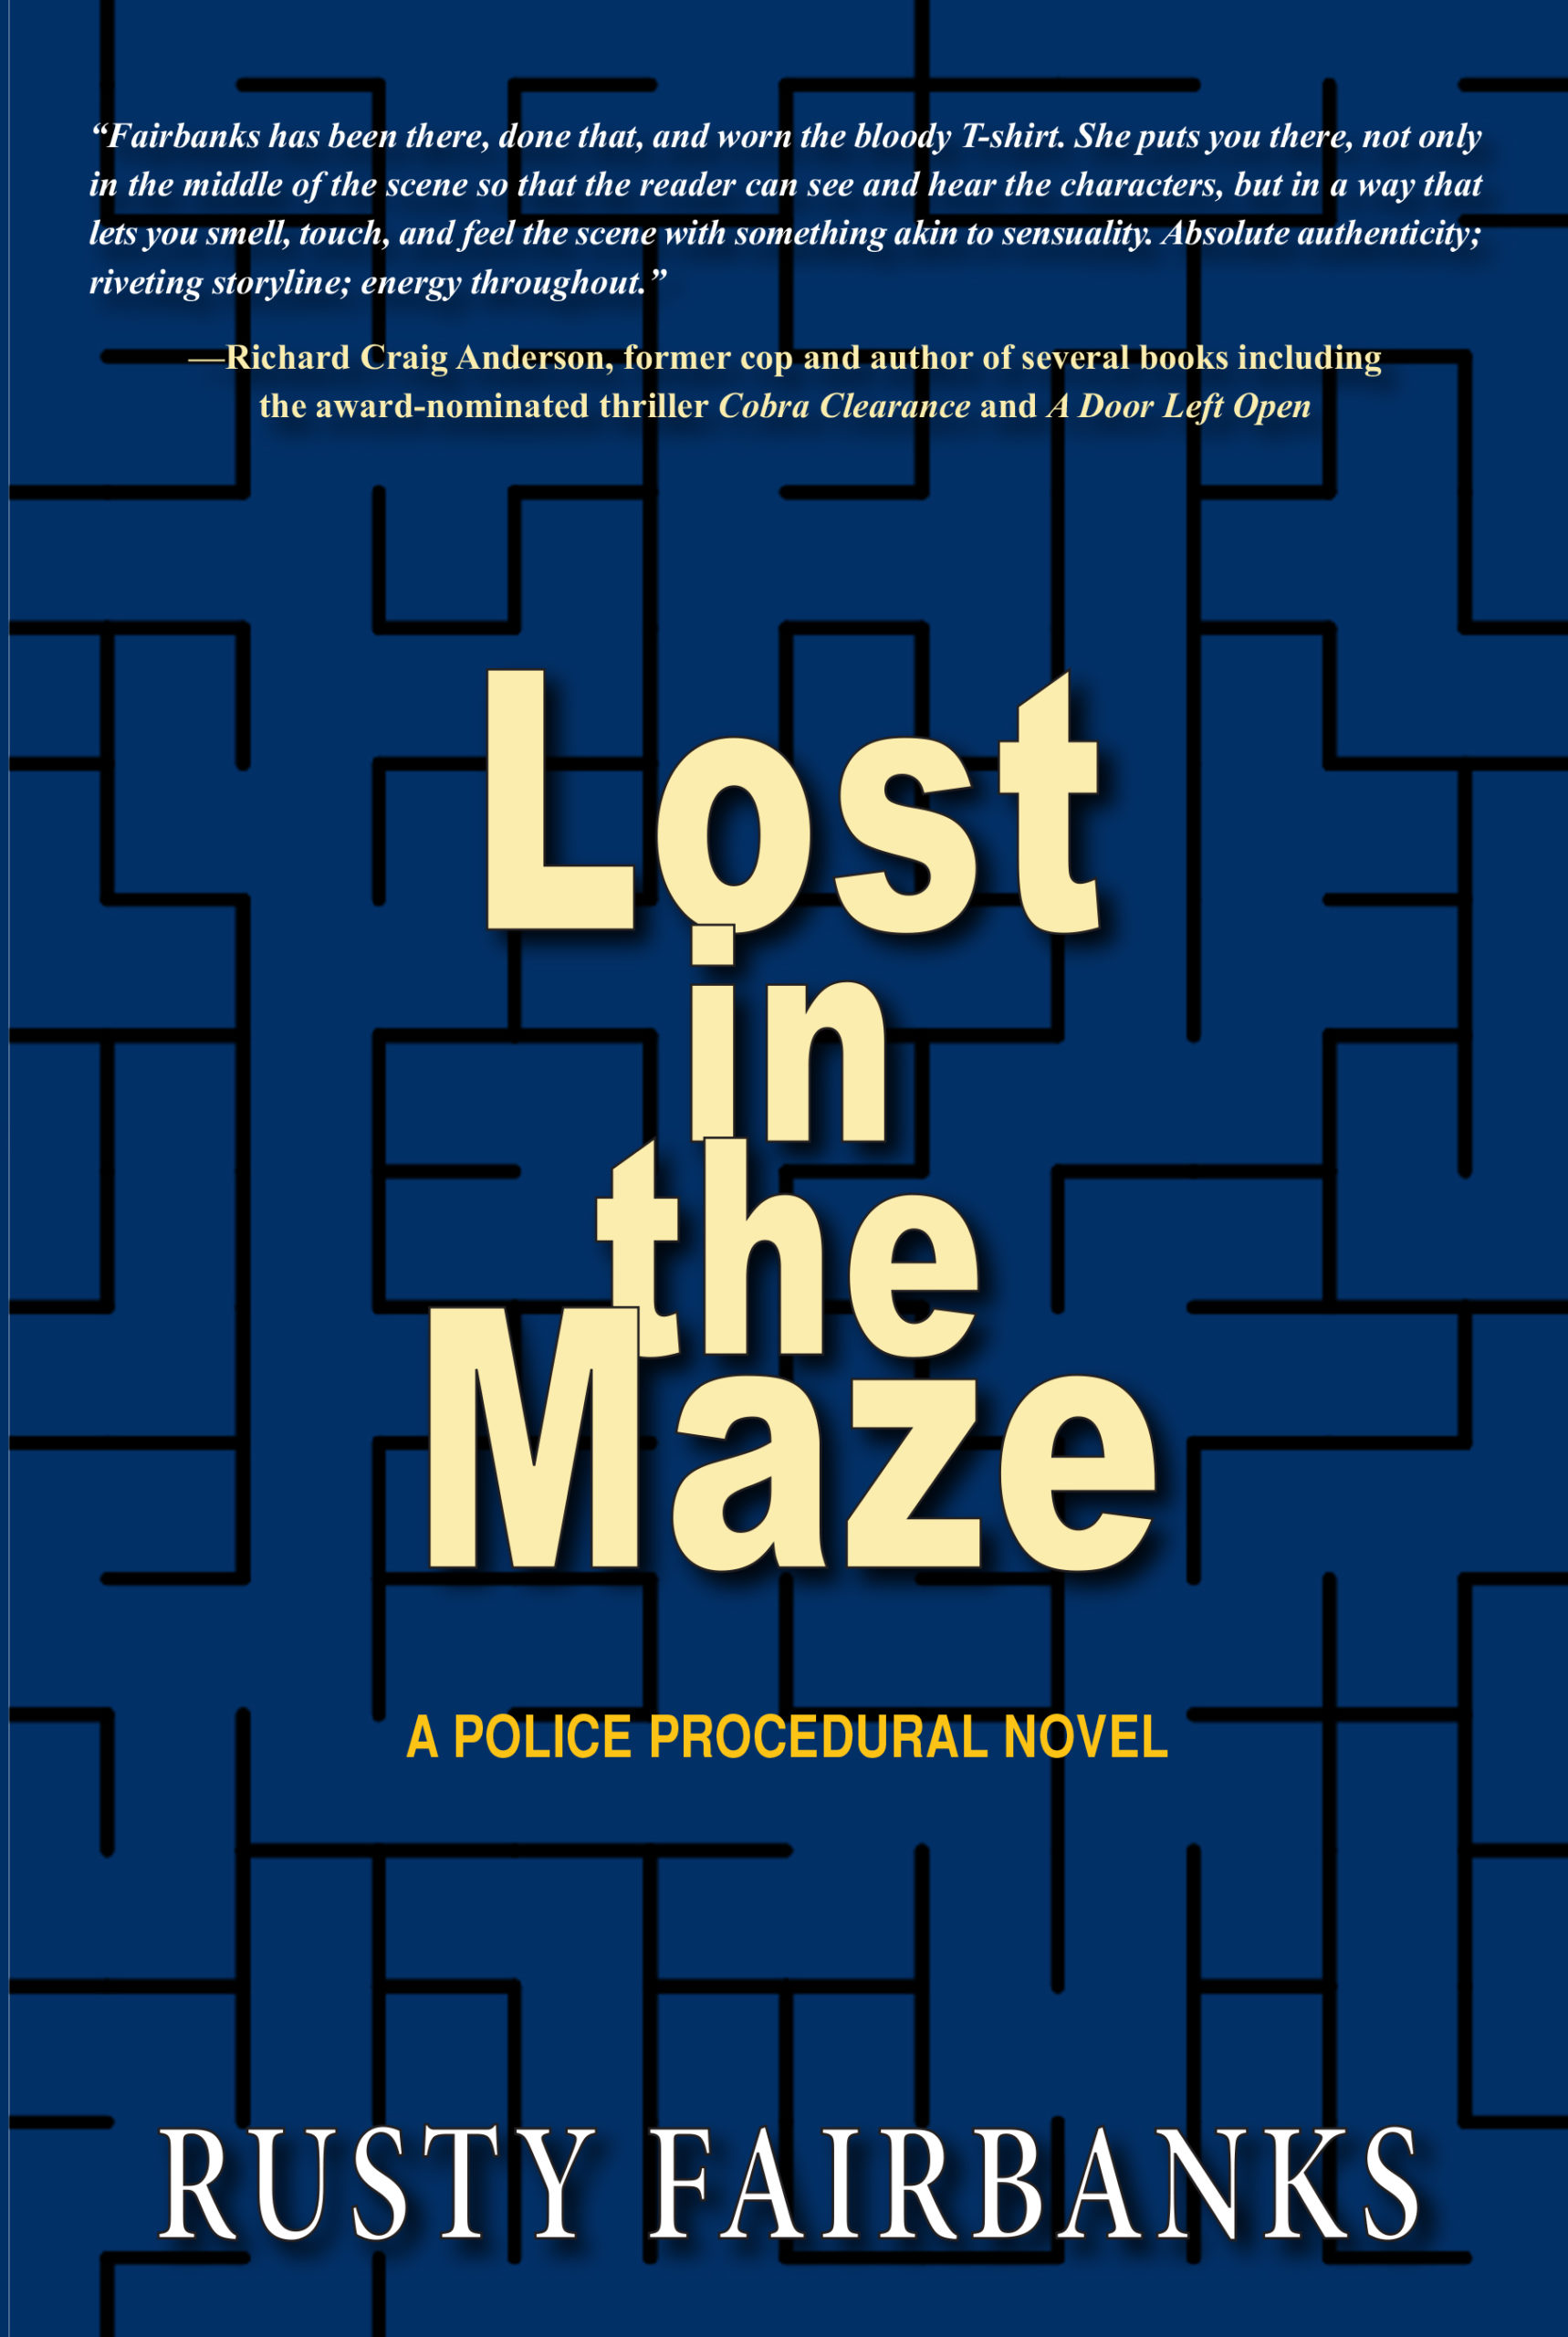 Lost in the Maze Image